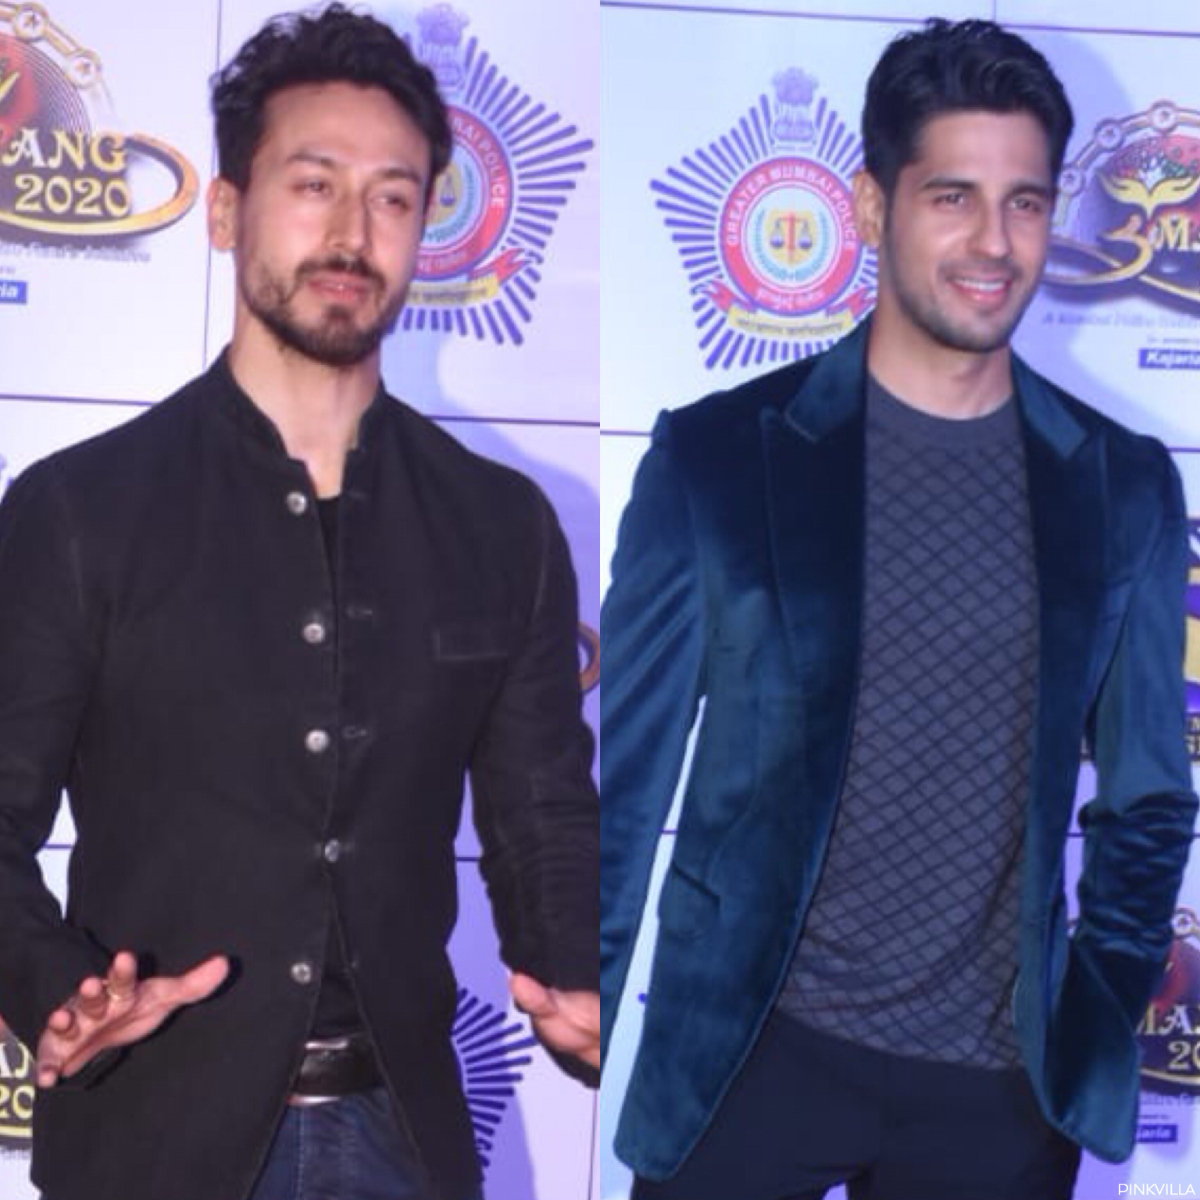 Umang 2020: Tiger Shroff, Sidharth Malhotra, Siddhant Chaturvedi and others arrive at the event